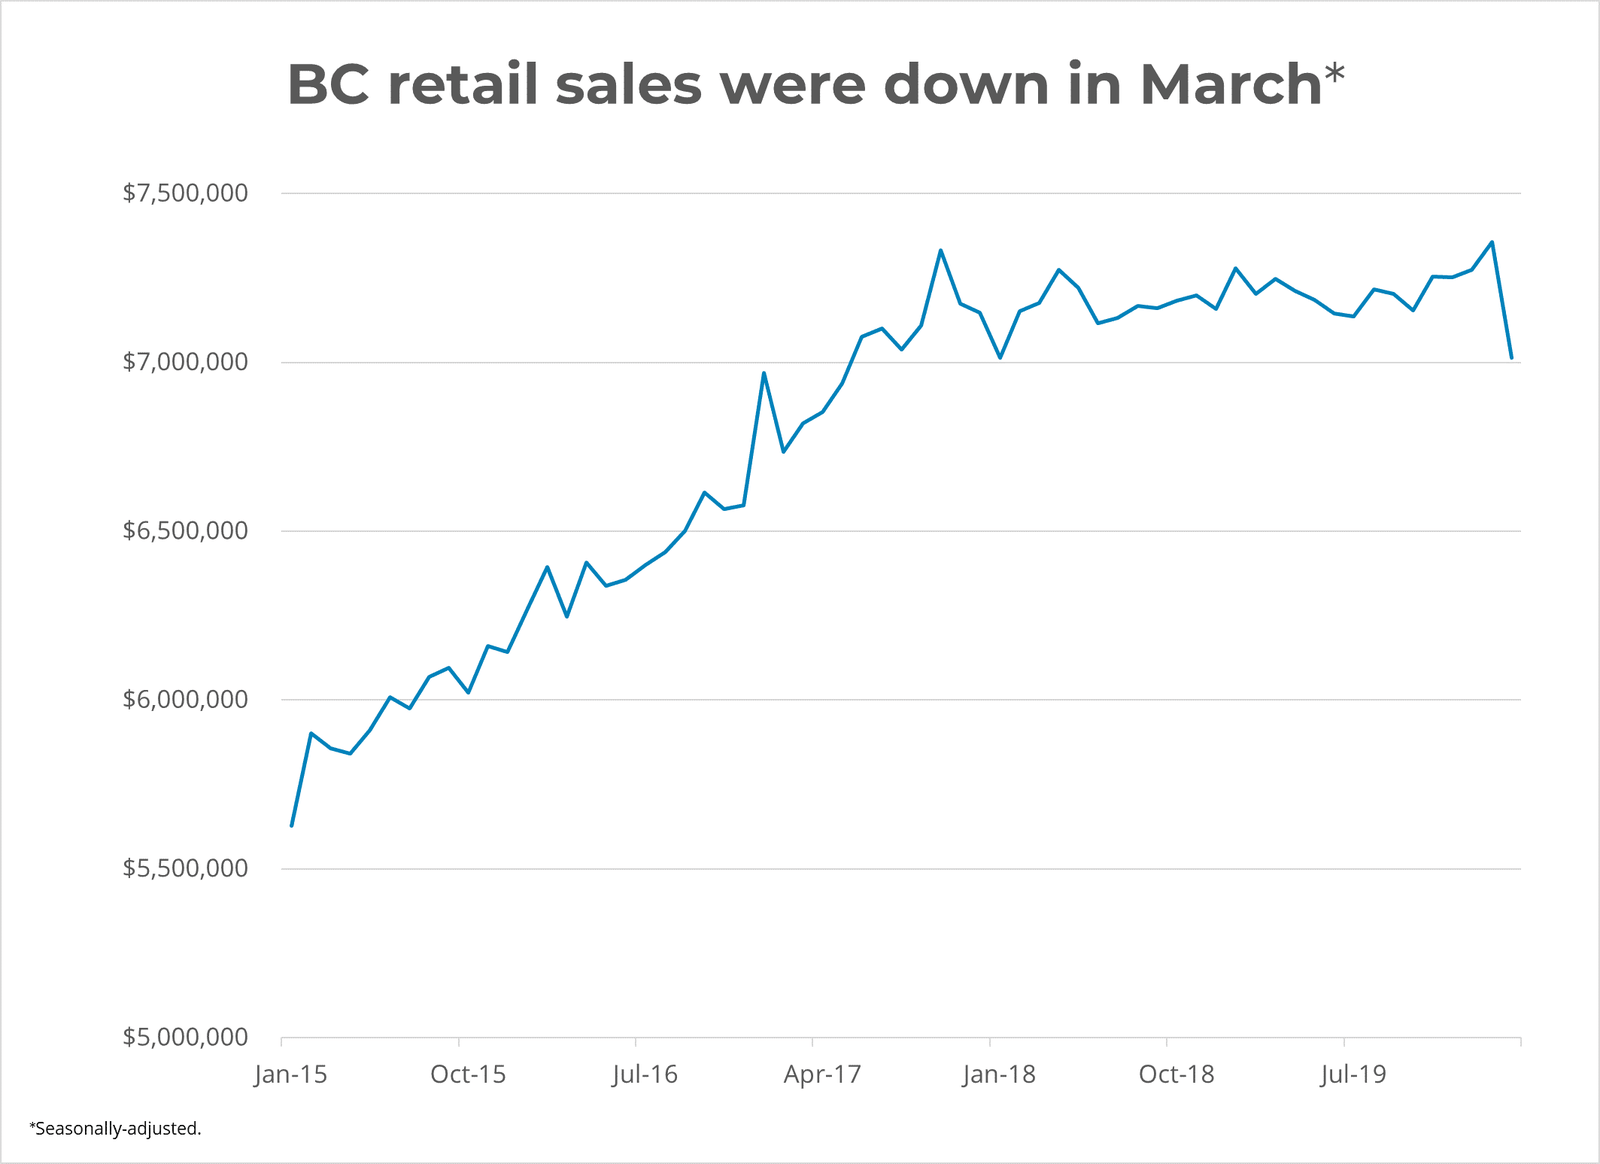 BC Retail Sales Down in March 2020